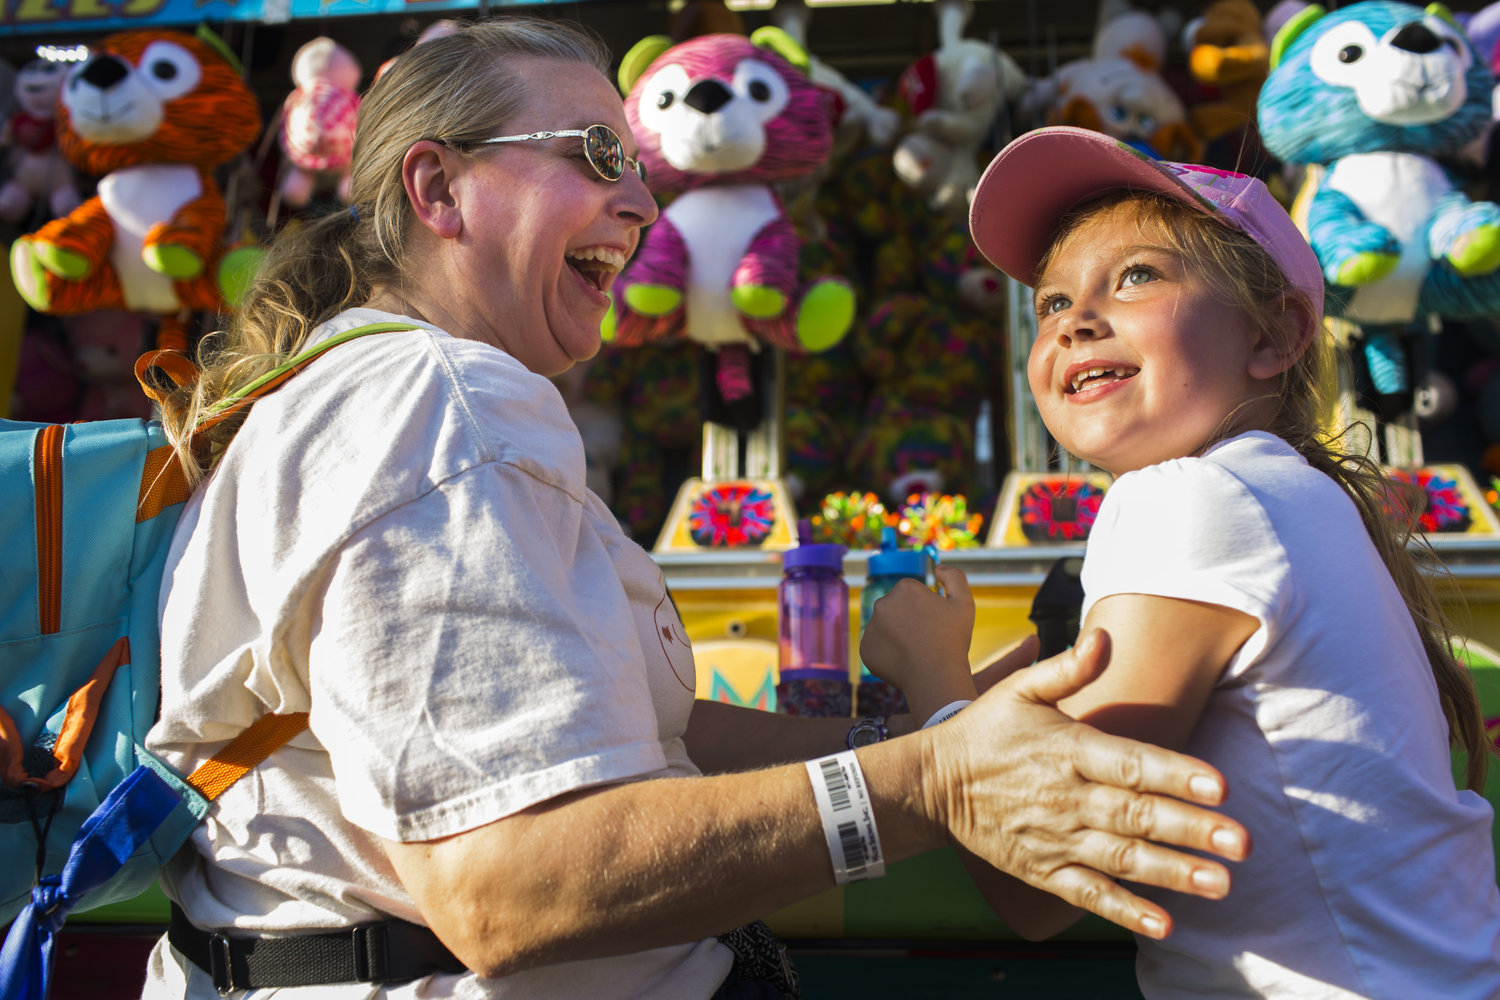 """Renee Nuzzo, left, of Mexico, reacts to daughter Kassondra Nuzzo, 7, winning a water race game on Saturday, Aug. 27, 2016 during the New York State Fair in Syracuse, N.Y. """"My arms aren't big enough,"""" she said after turning down the opportunity to play again."""